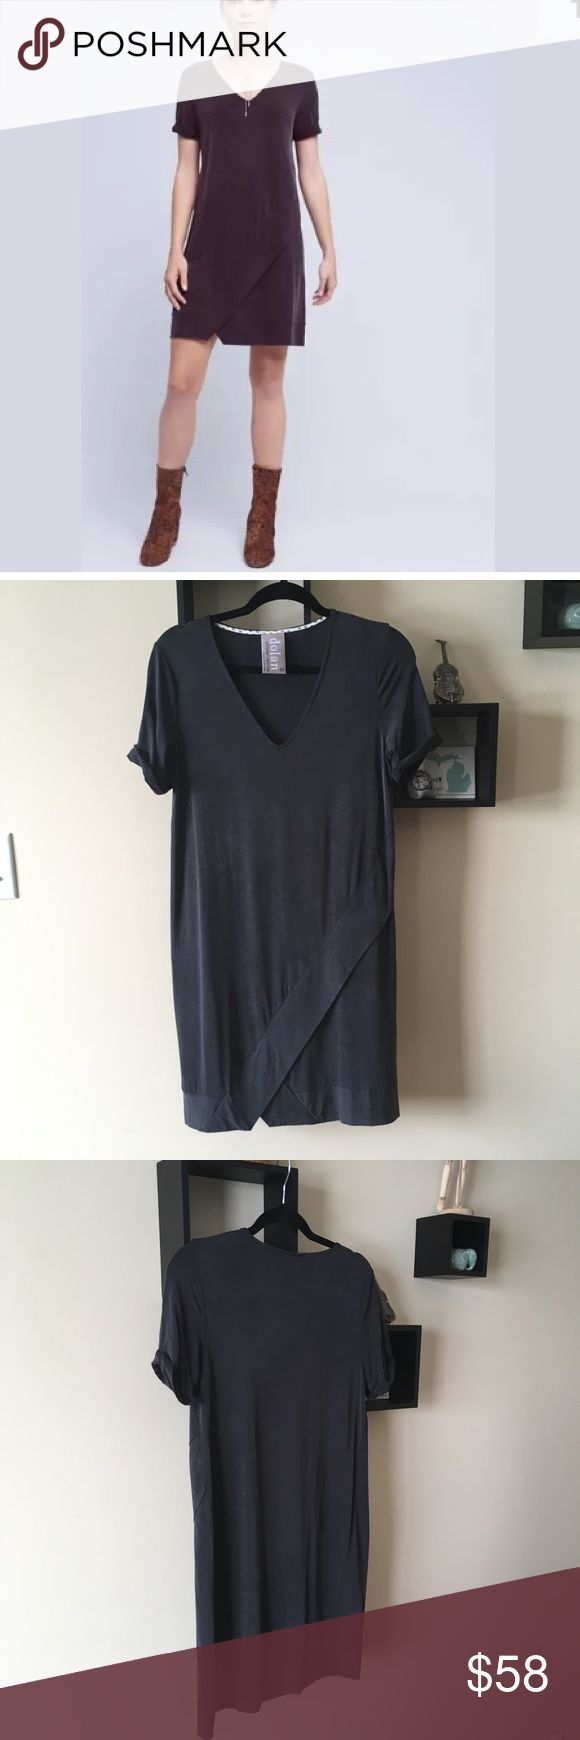 {Anthro} Dolan Left Coast dress This is the comfiest dress you'll ever put on! Runs a bit oversized. The color is a black, almost smoky-gray color, and the material has a suede look to it! So neat! Worn and washed once, only, perfect condition- no flaws! Please note that due to the intended design of the dress, the fabric has a bit of a textured appearance to it (where it changes depending on the direction you run your hand over it, if you know what I mean)! Anthropologie Dresses Mini